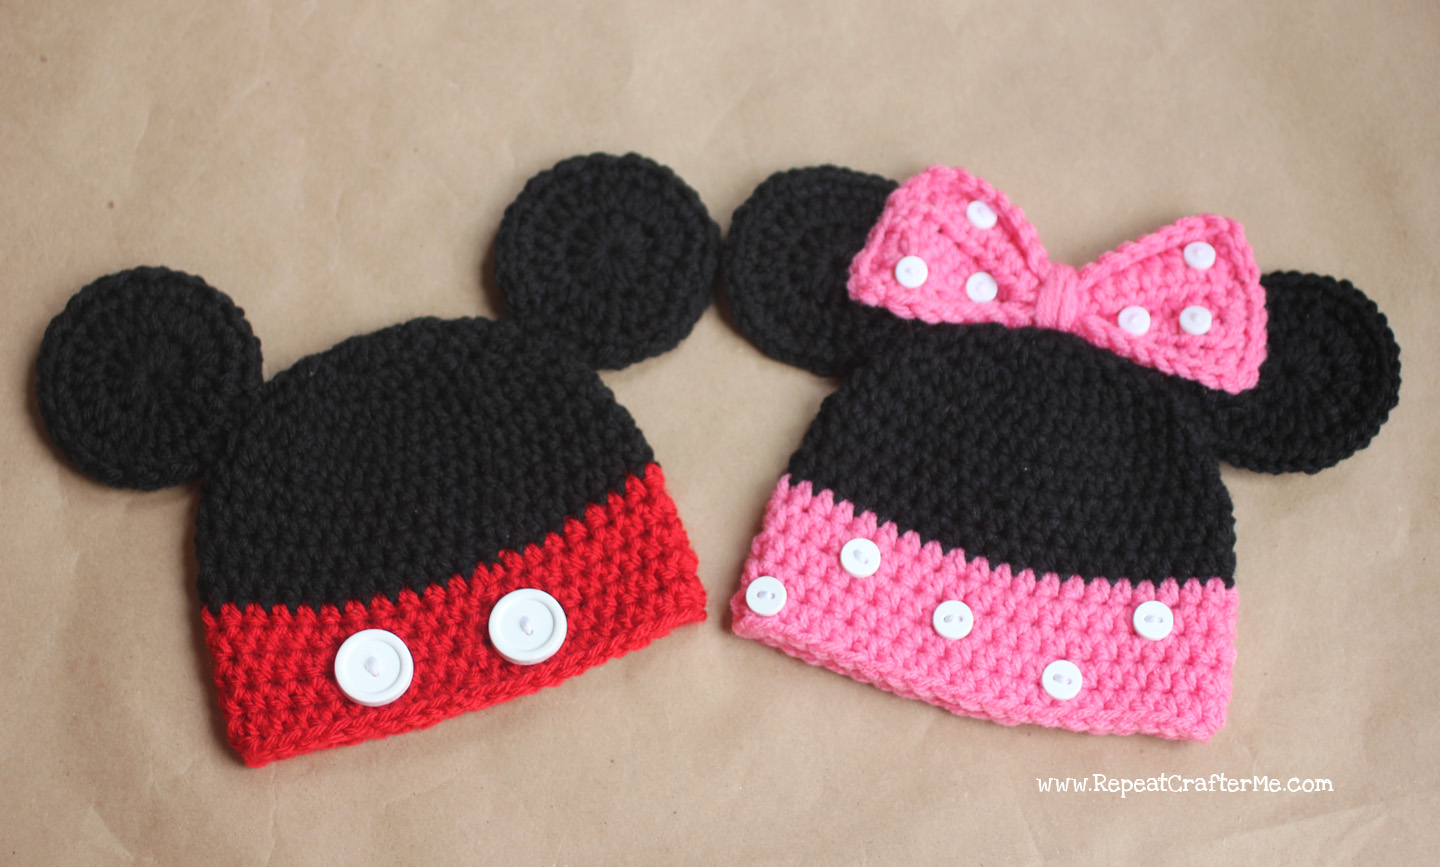 Crochet Me Free Patterns : ... Mouse Crochet Hat Pattern this one is also by Repeat Crafter Me